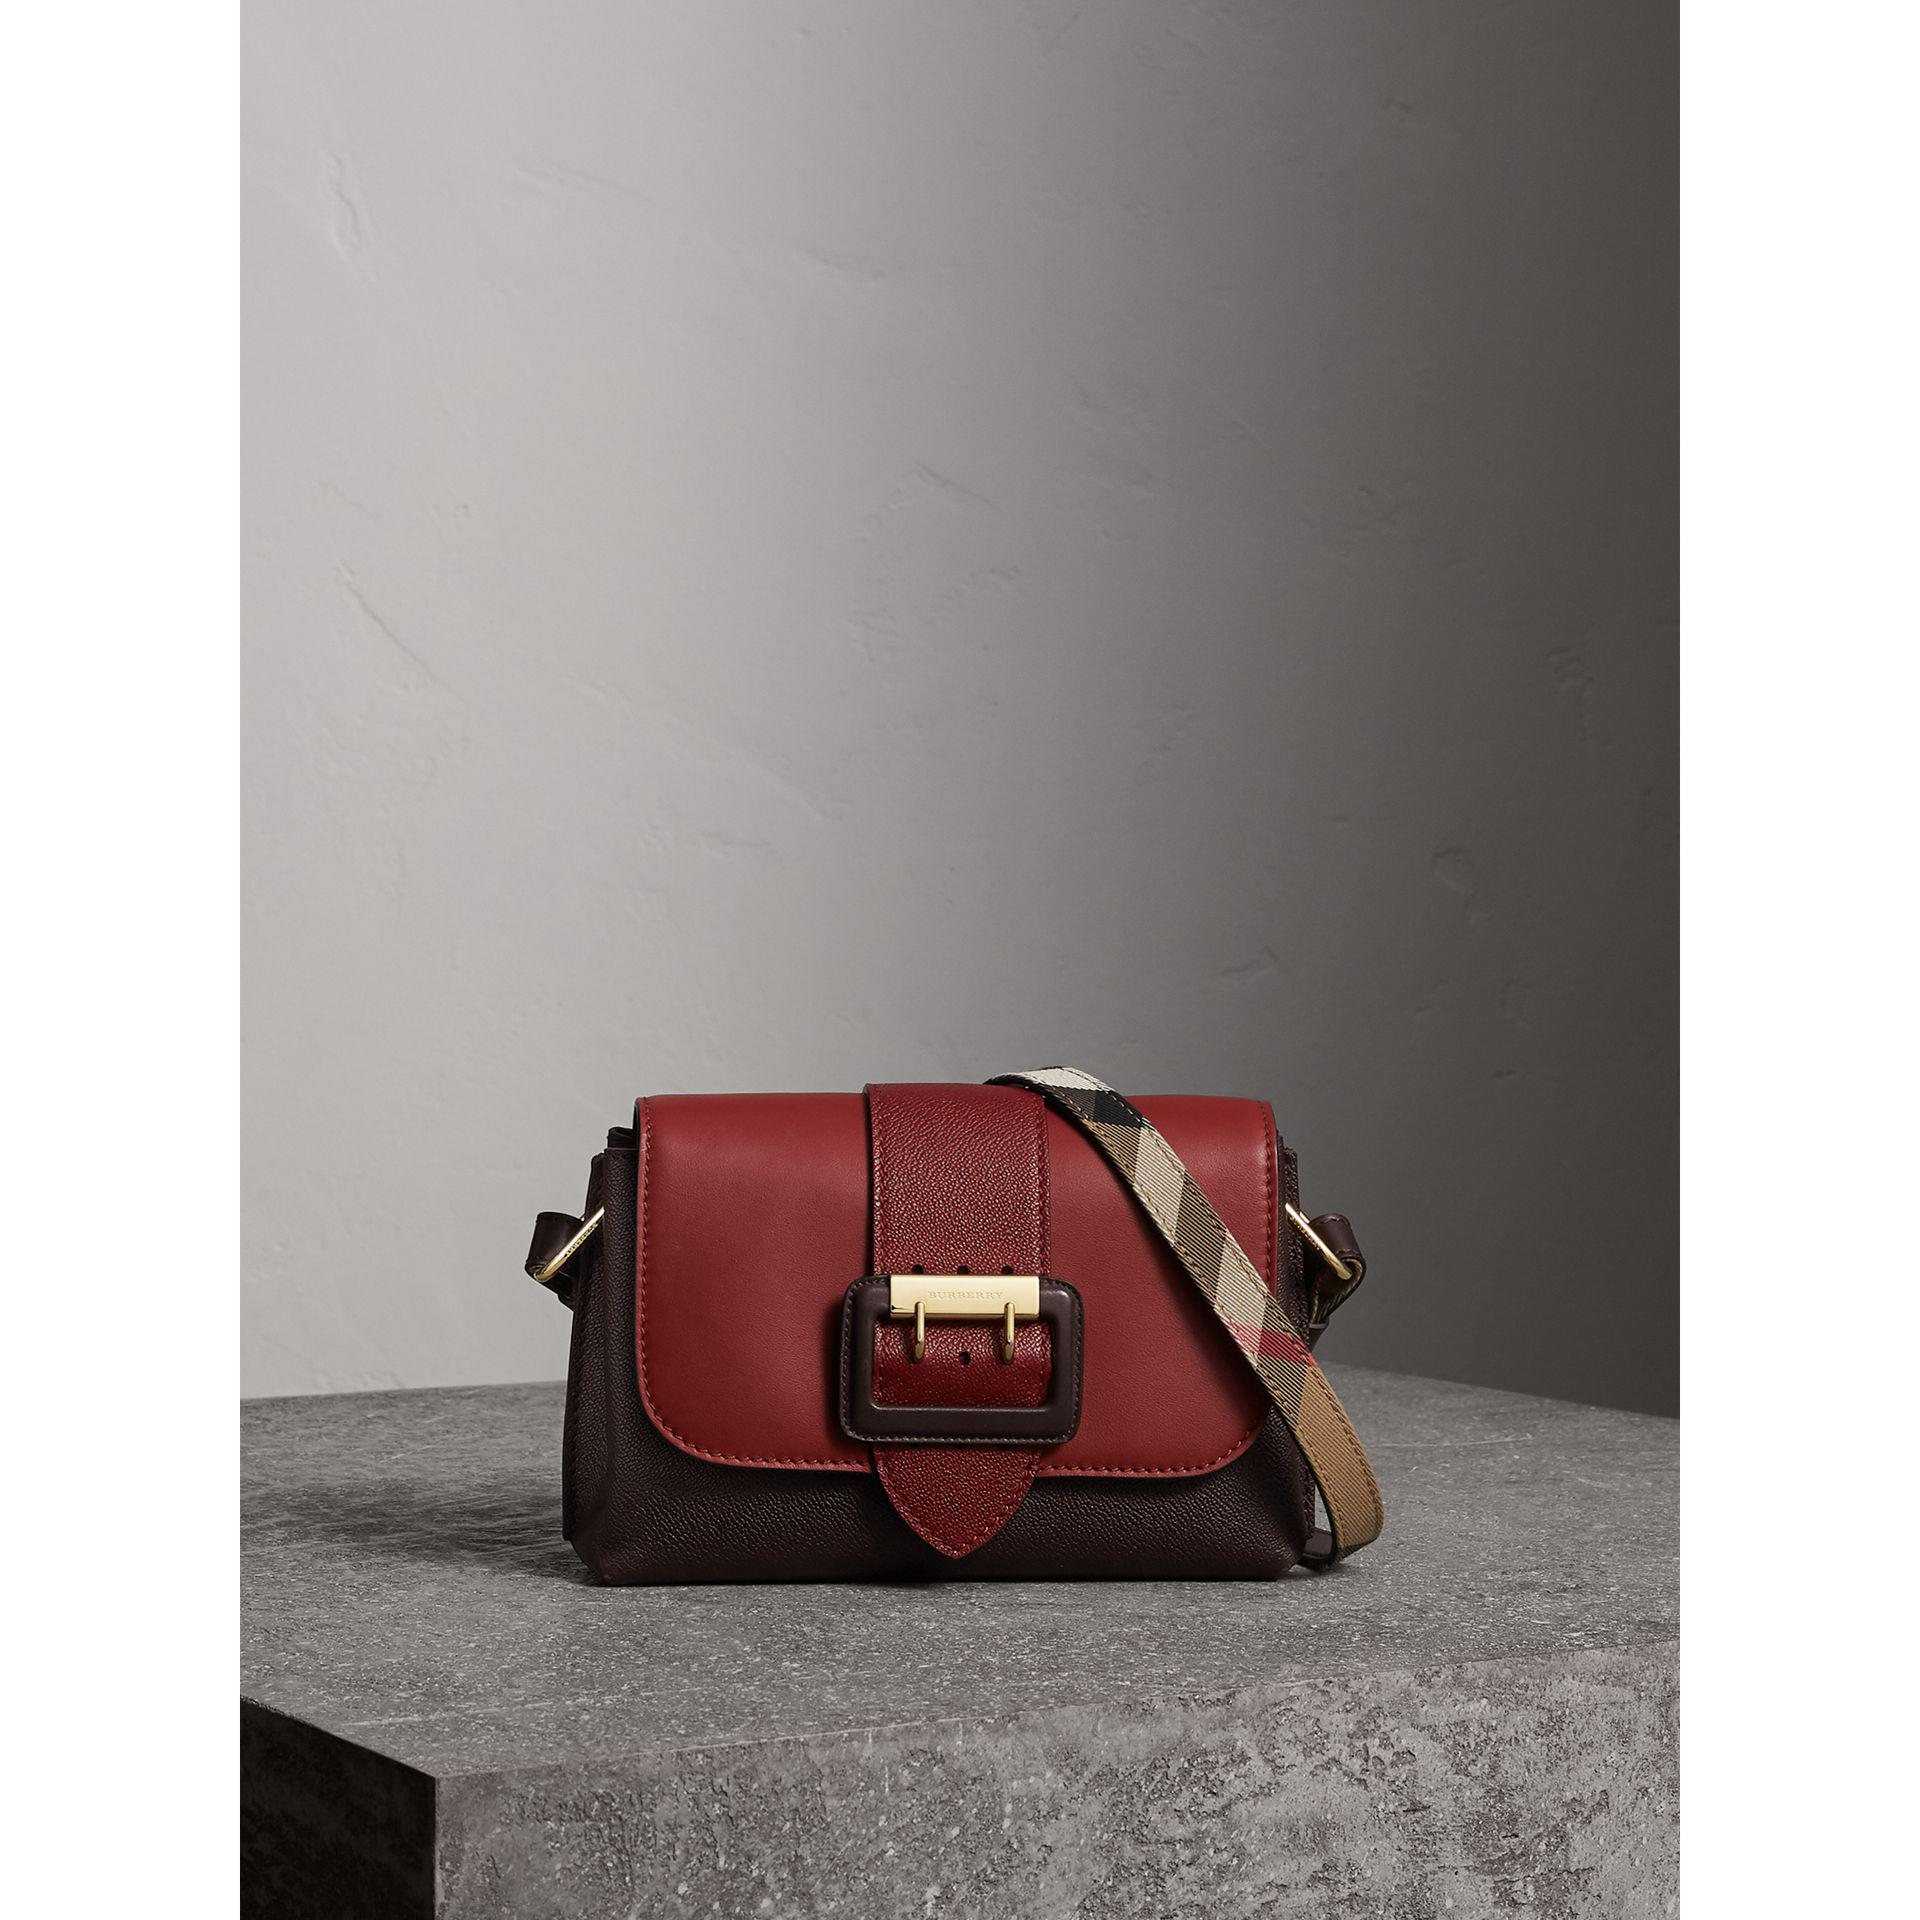 Burberry The Buckle Crossbody Bag In Colour-block Leather - Lyst 8561801f3c43d